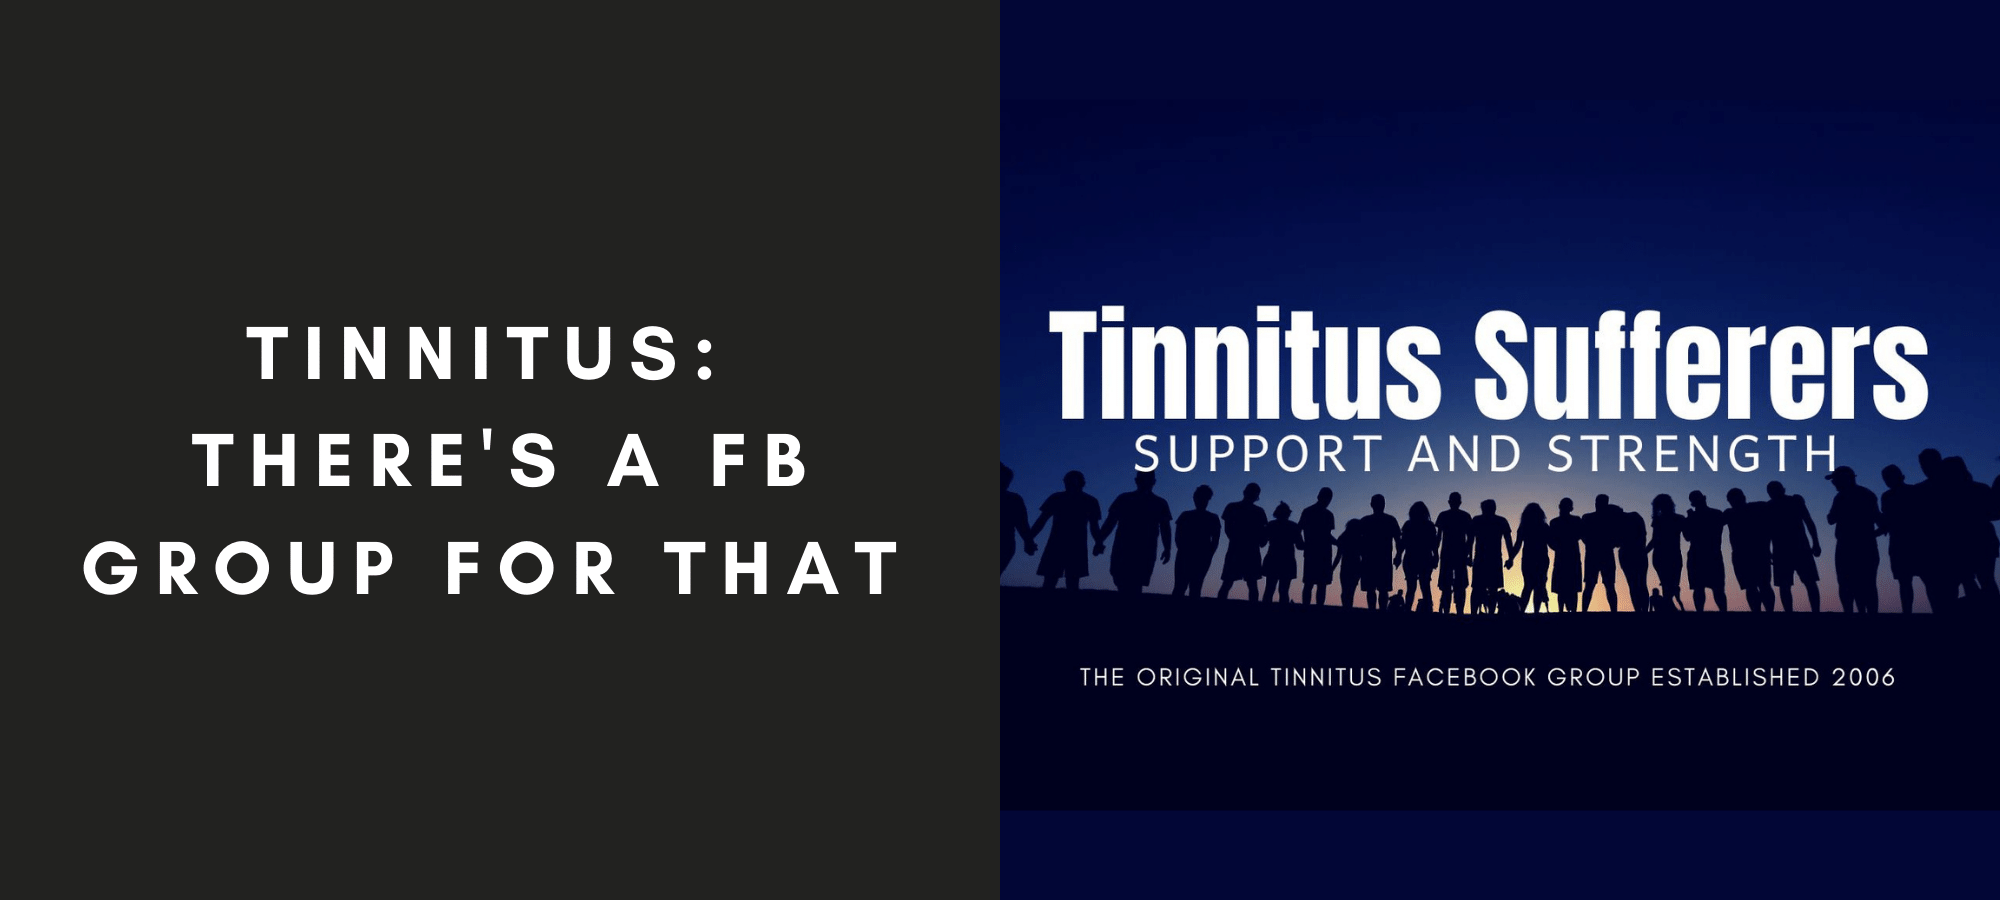 Tinnitus: There's a Facebook Group for that!